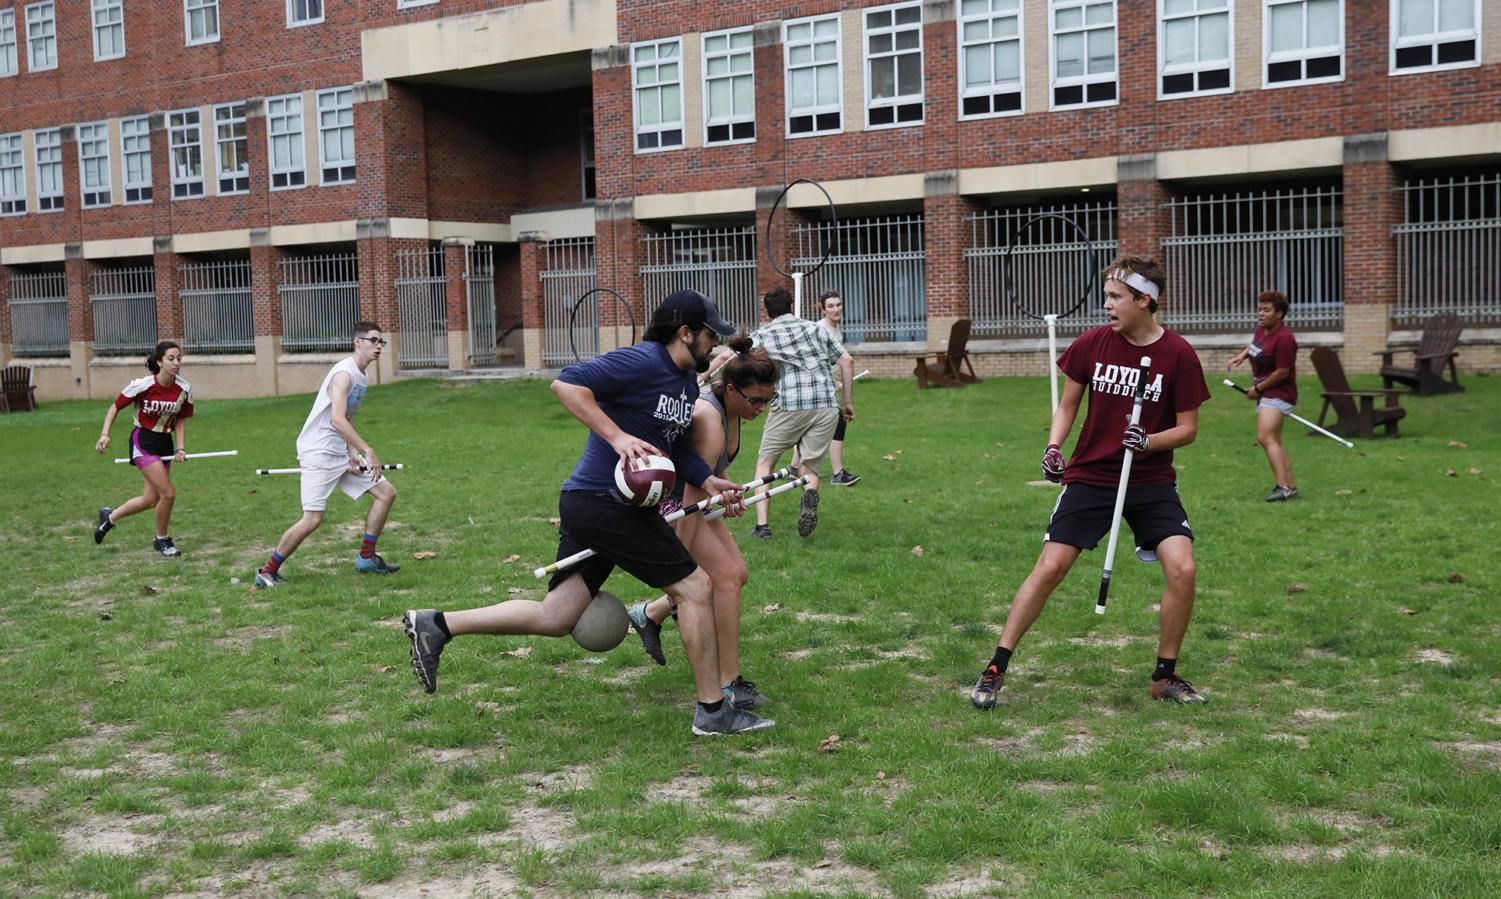 The quidditch team practices in the 2018 spring semester. The team finished winless that semester in 16 games, but have gotten off to a 4-6 start this season. Photo credit: Cristian Orellana